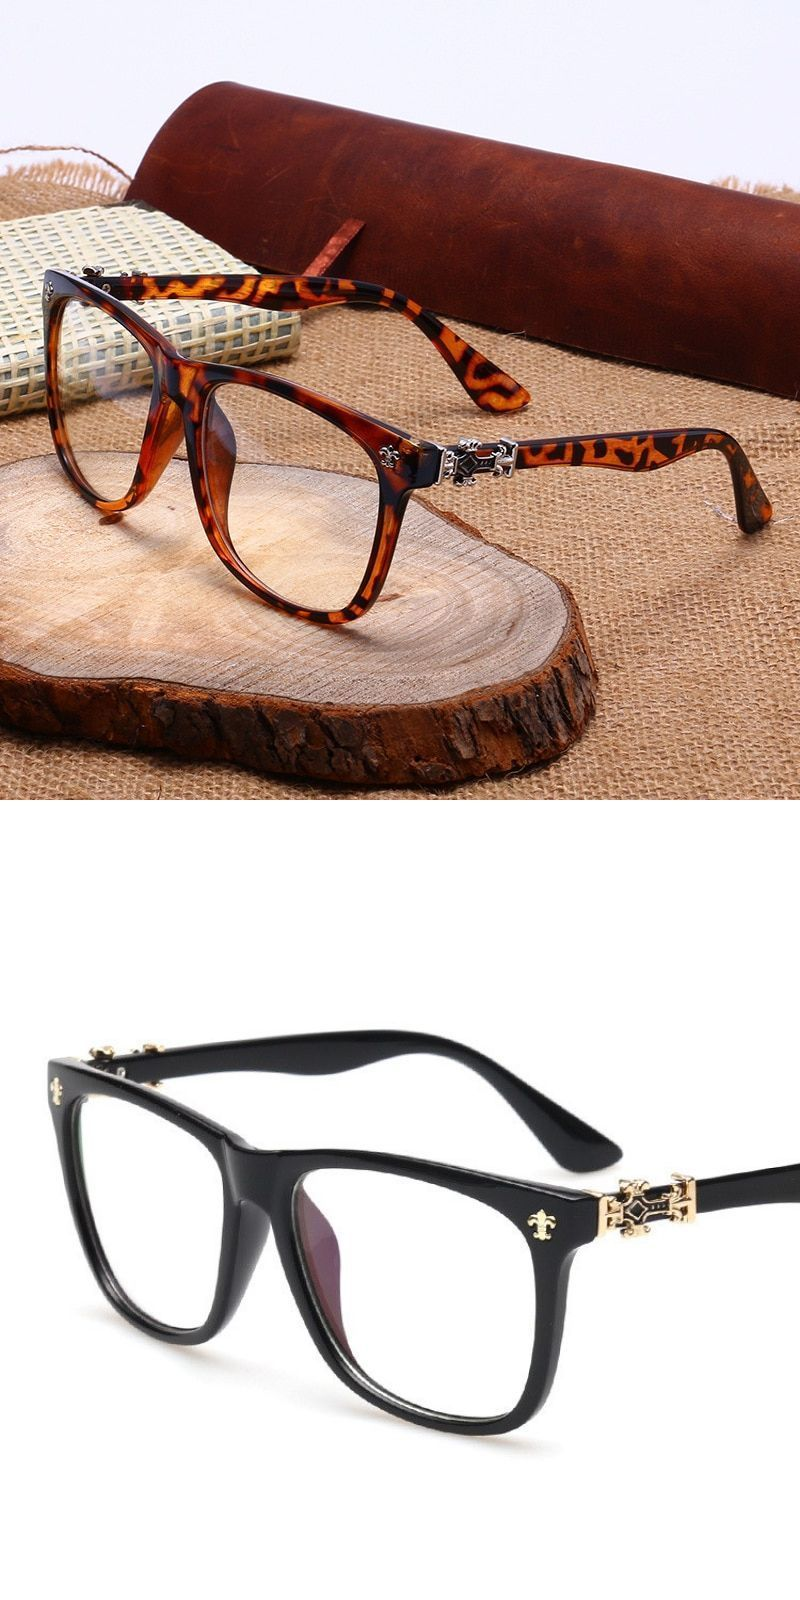 63a84f45492 Vintage eyeglass frames women men designer eyewear frame optical eye  glasses frame can match photochromic lenses  frames  eyewear  accessories   women ...